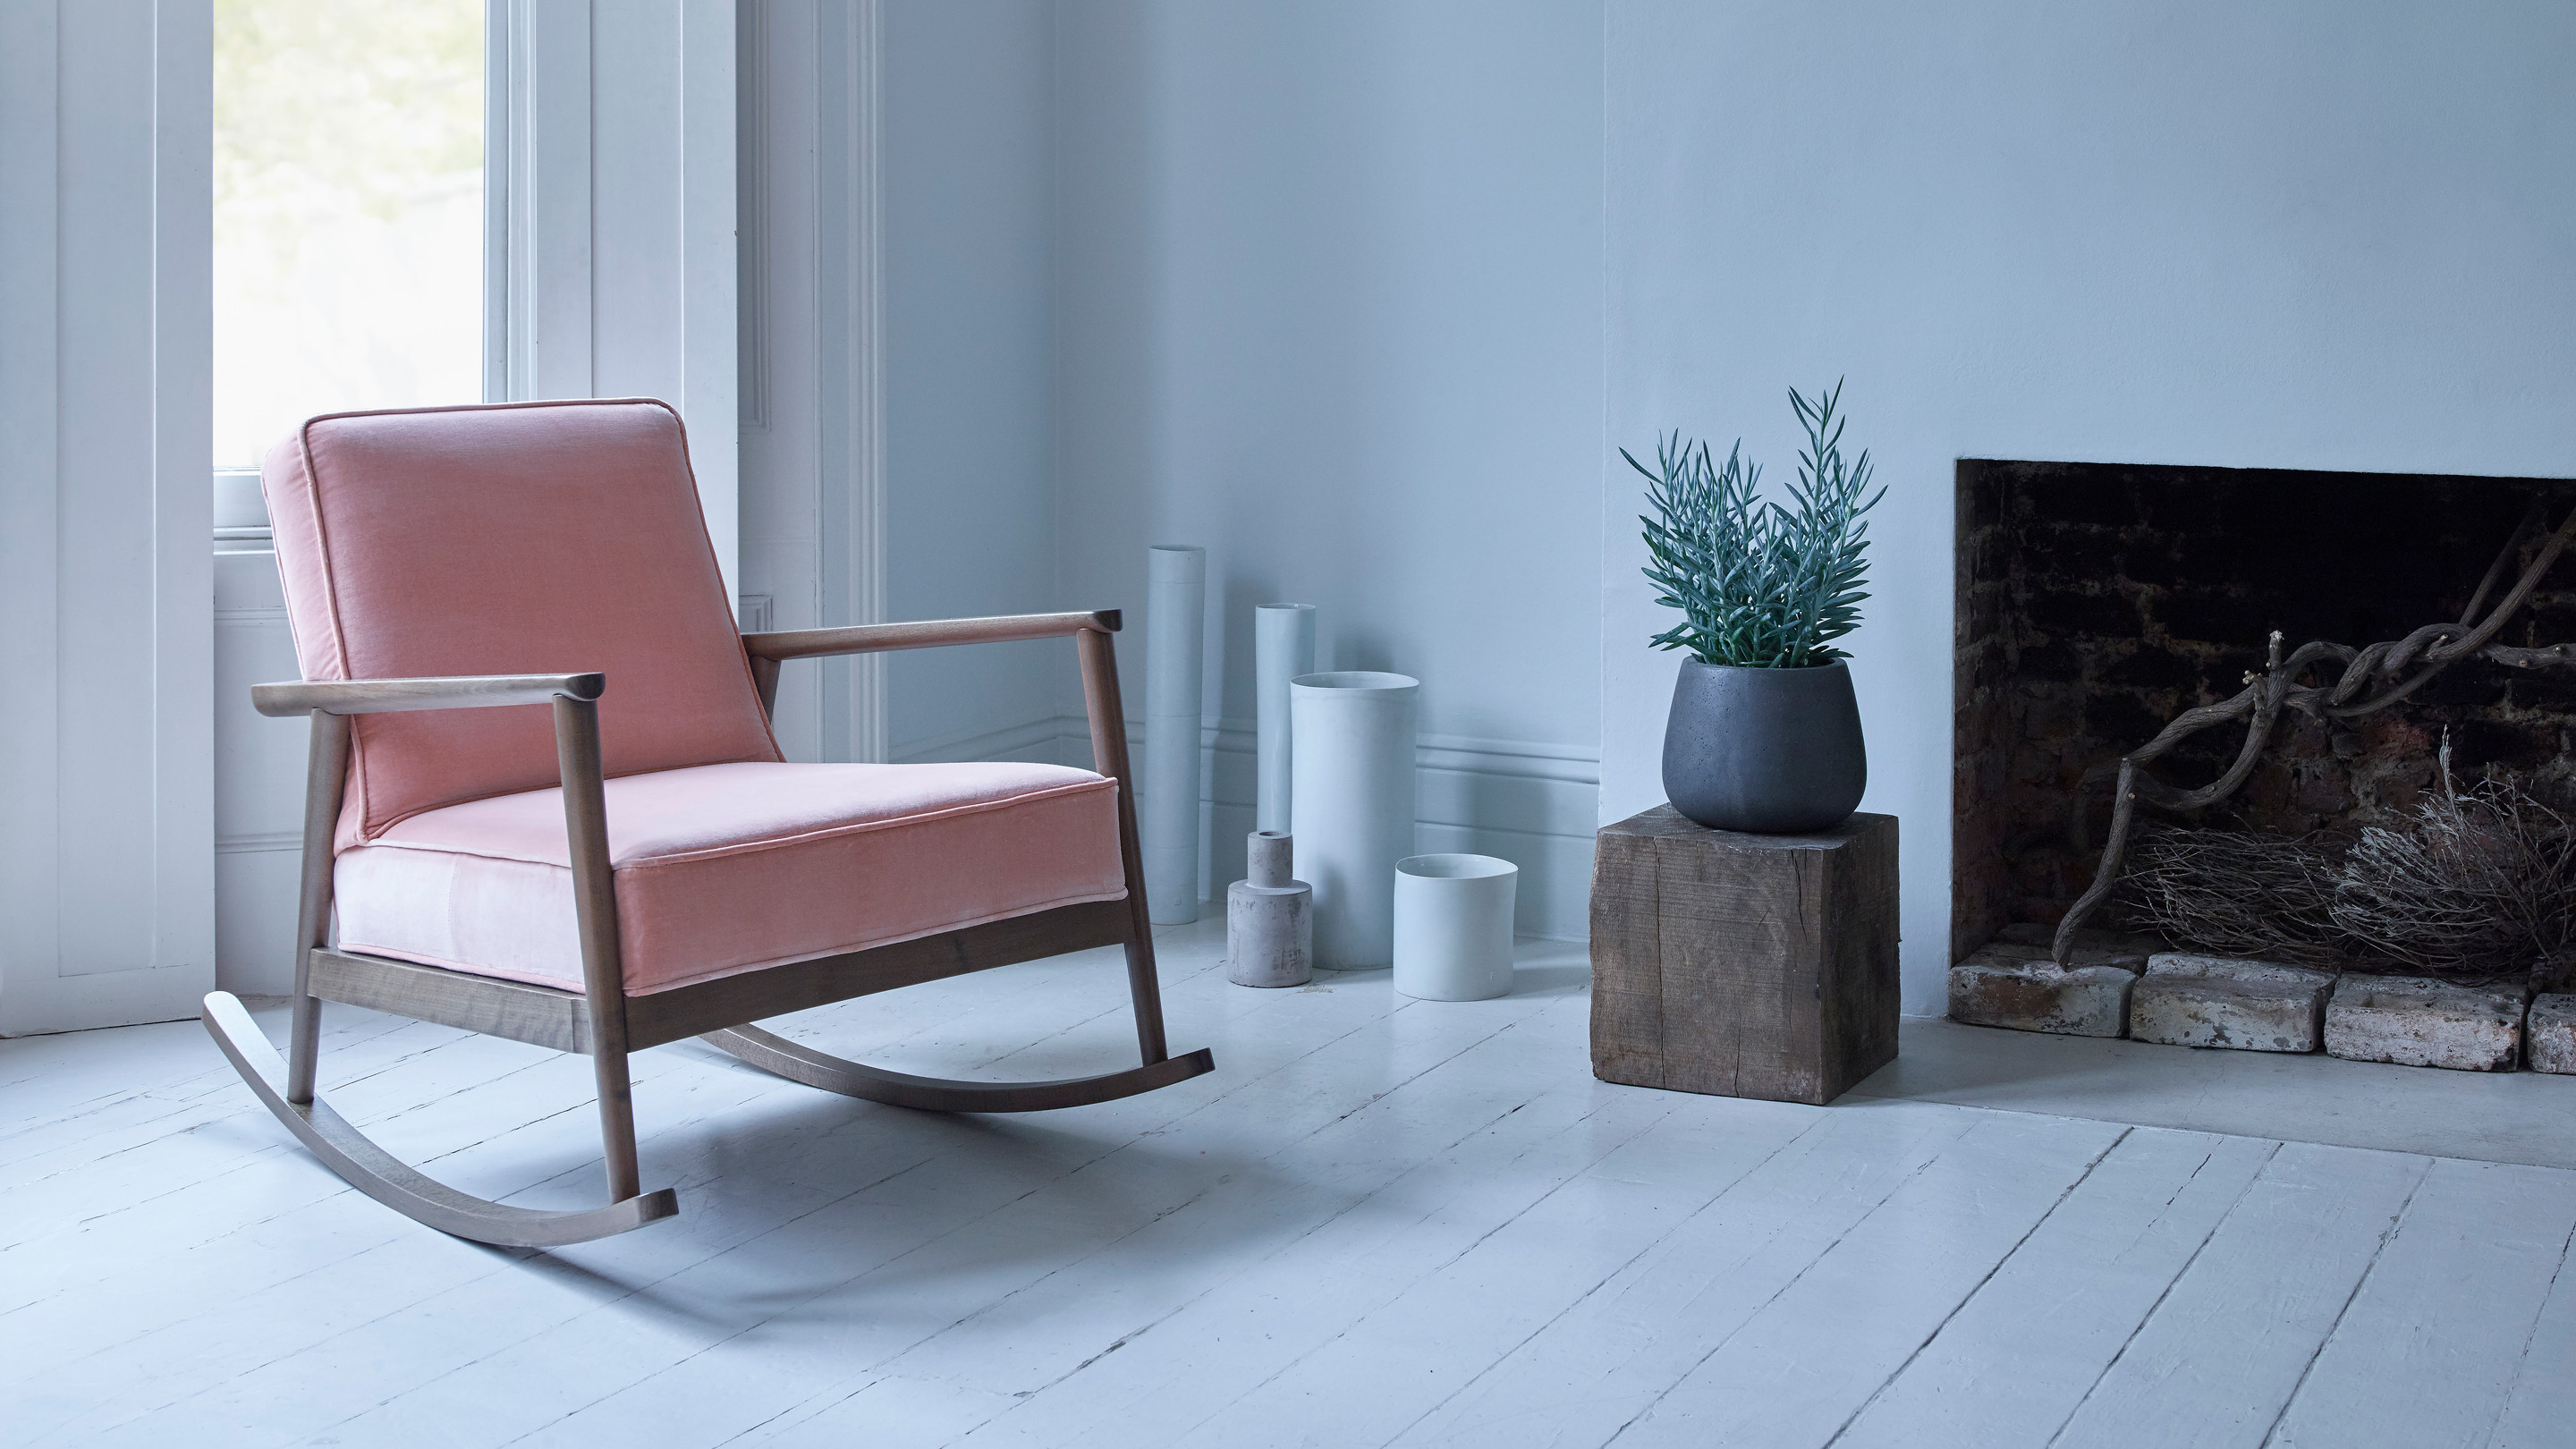 rocking chair silhouette. The Charming Jemima Mid-century Rocking Chair Is Influenced By Simple Scandi-design, With Its Graceful Silhouette And Clean Lines. Perfect Lazy Lounger